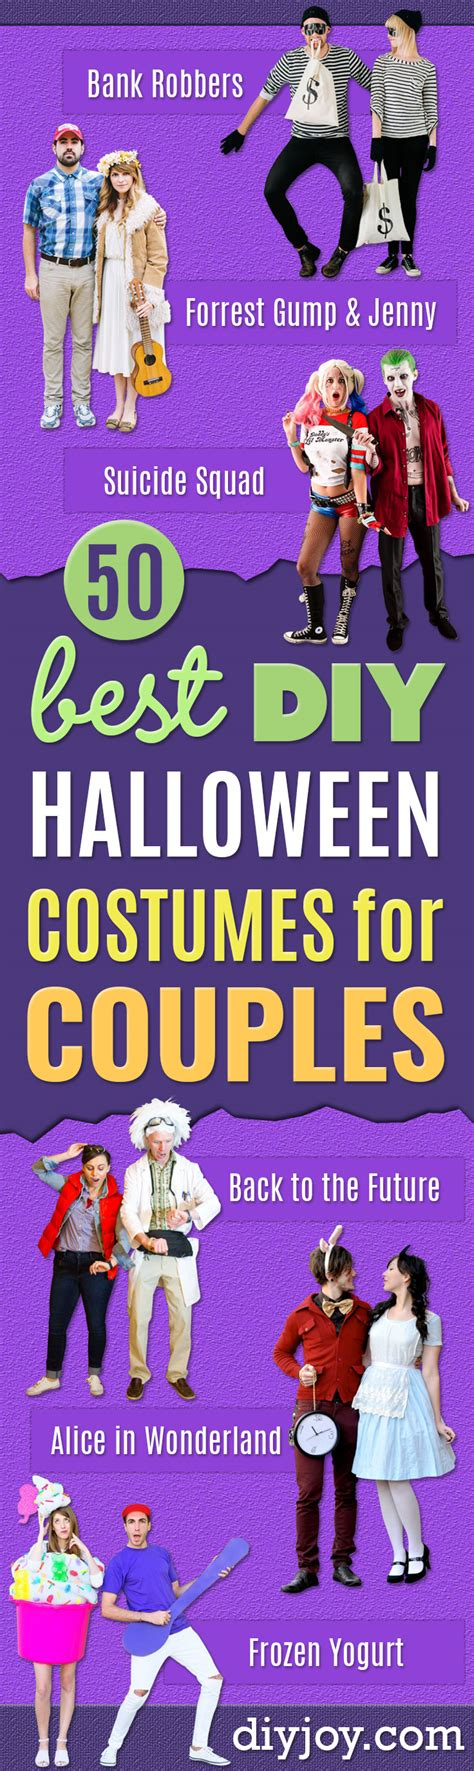 diy projects for couples 50 best diy costumes for couples